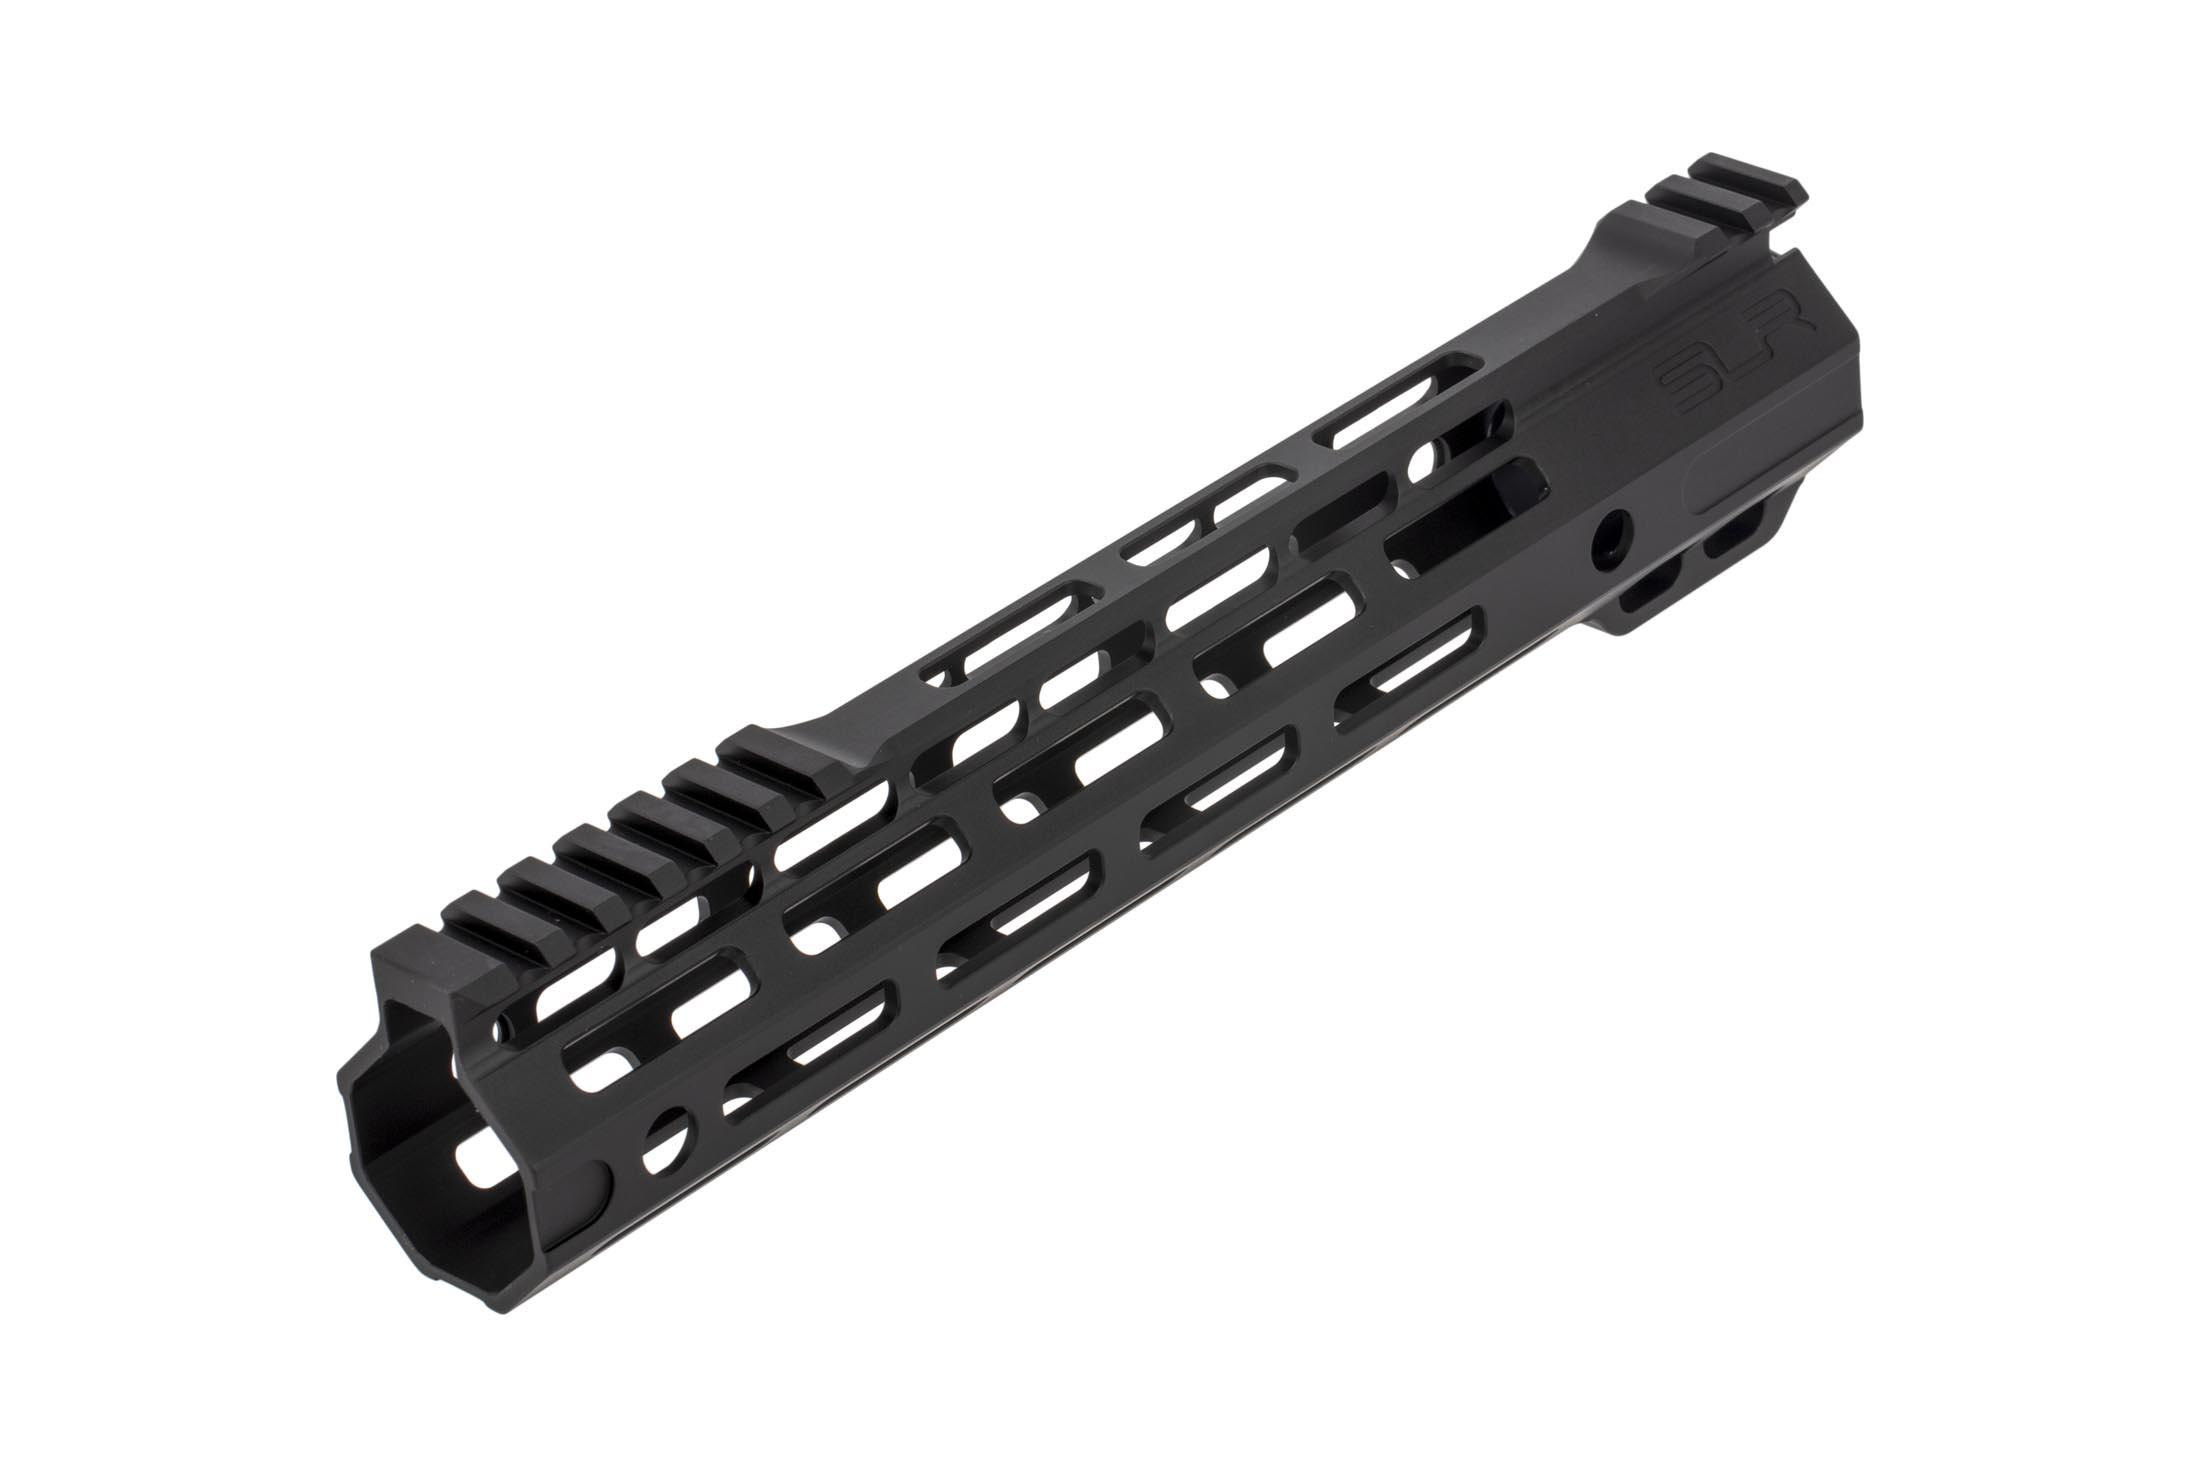 The SLR Rifleworks Ion Ultra Lite free float handguard has 7 sides of M-LOK attachment slots